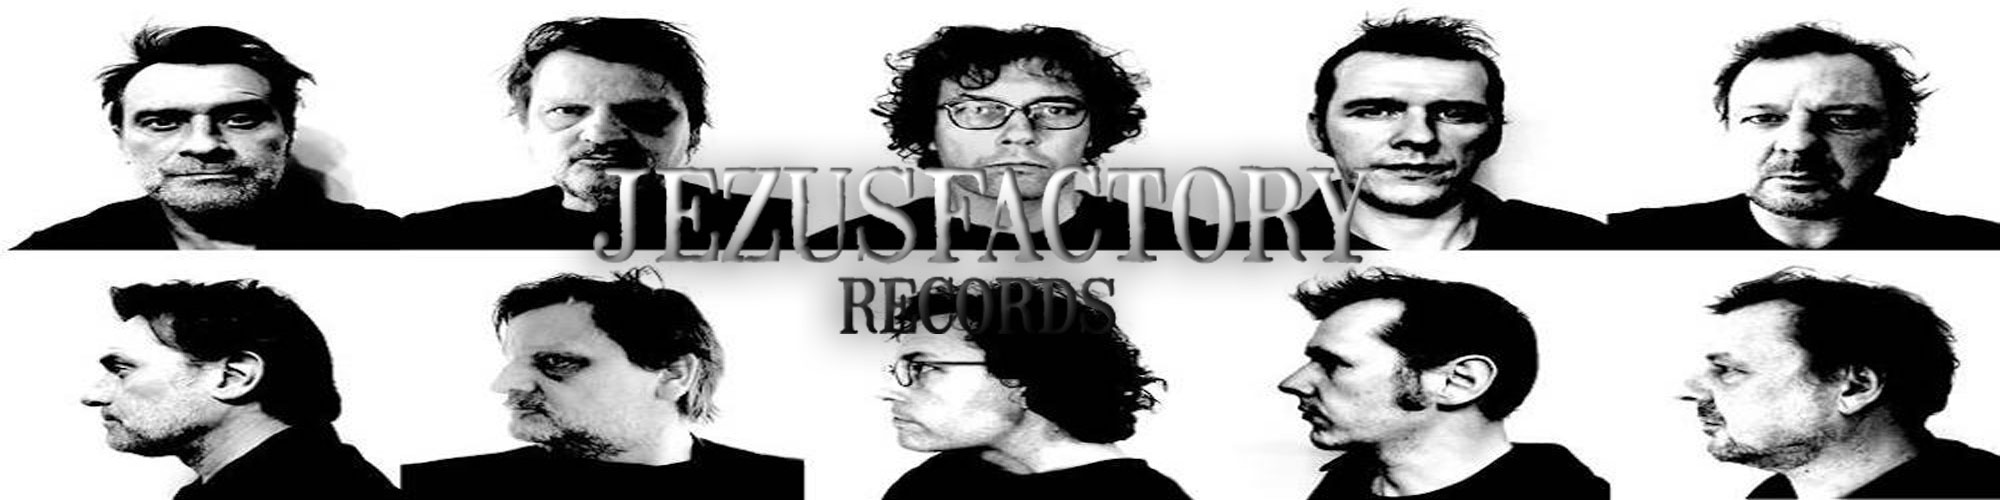 Jezus Factory Records